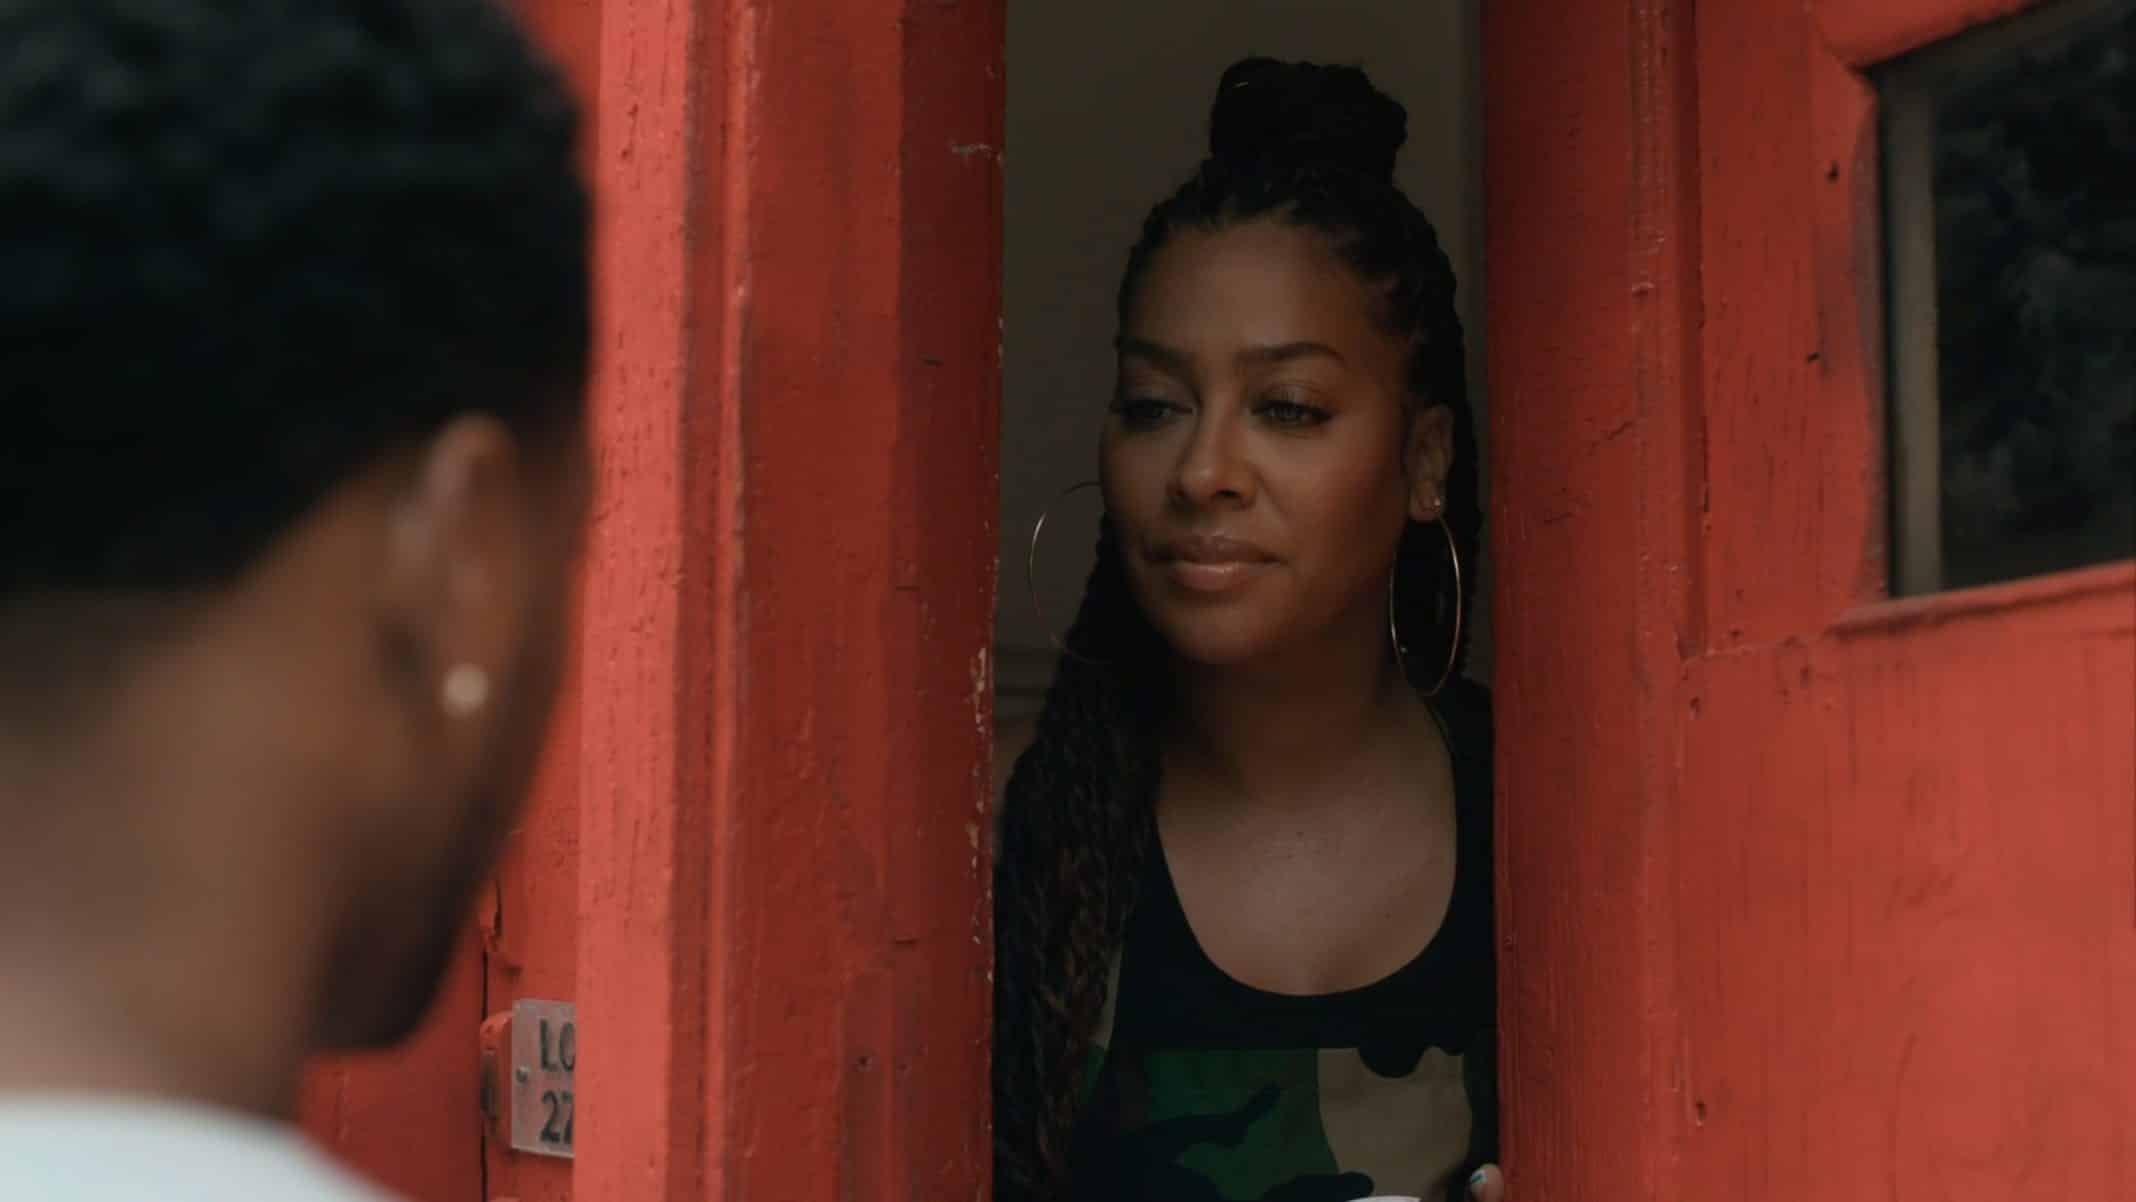 Dominique (Lala Anthony) talking to Emmett at her doorway | The Chi Season 3 Episode 2 Brewfurd